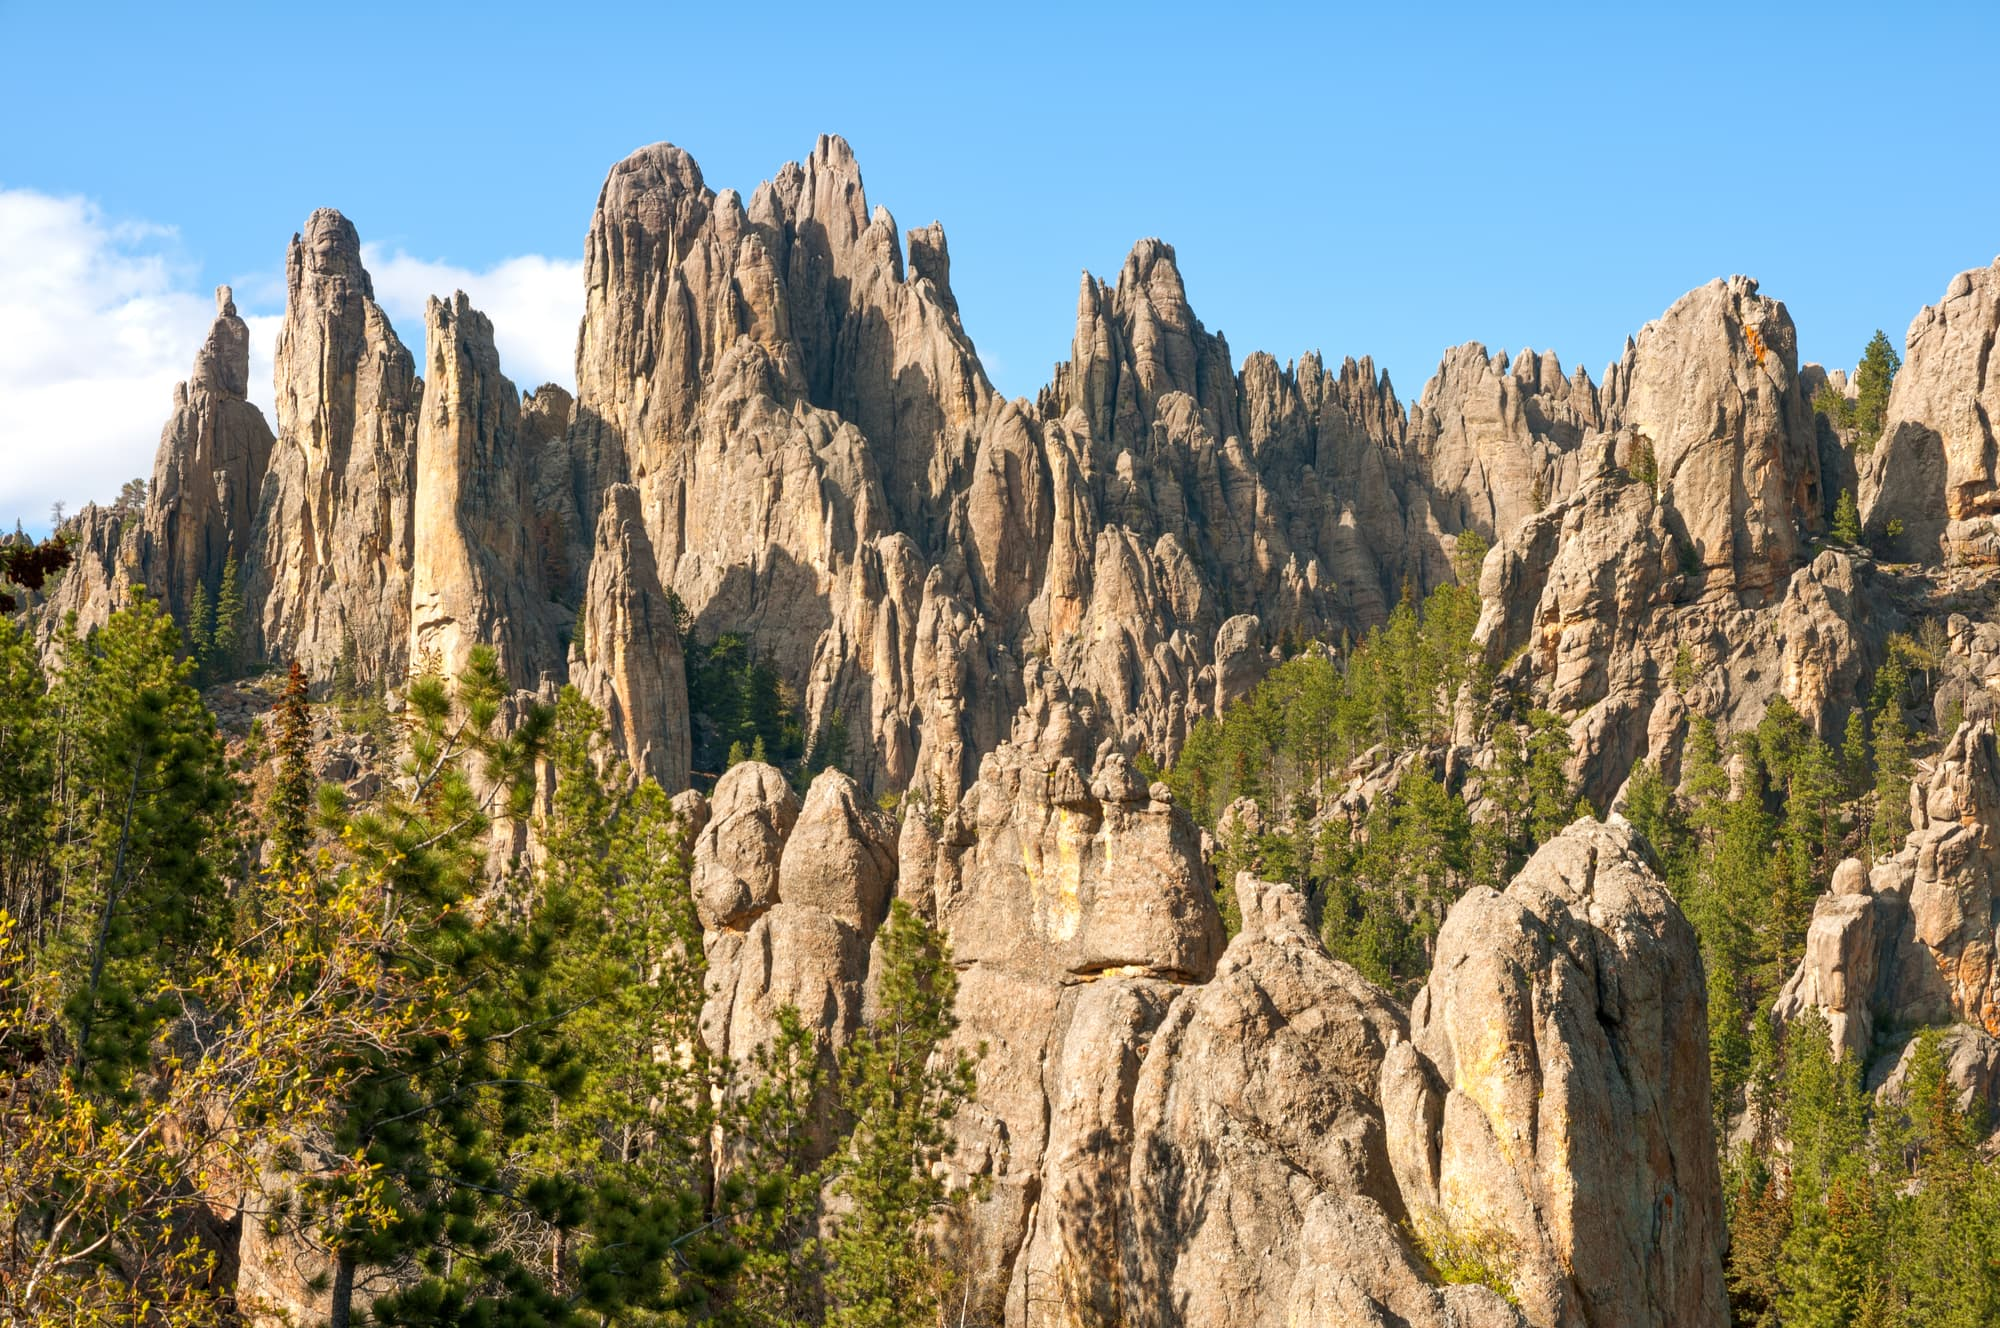 rock formations from the Black hills